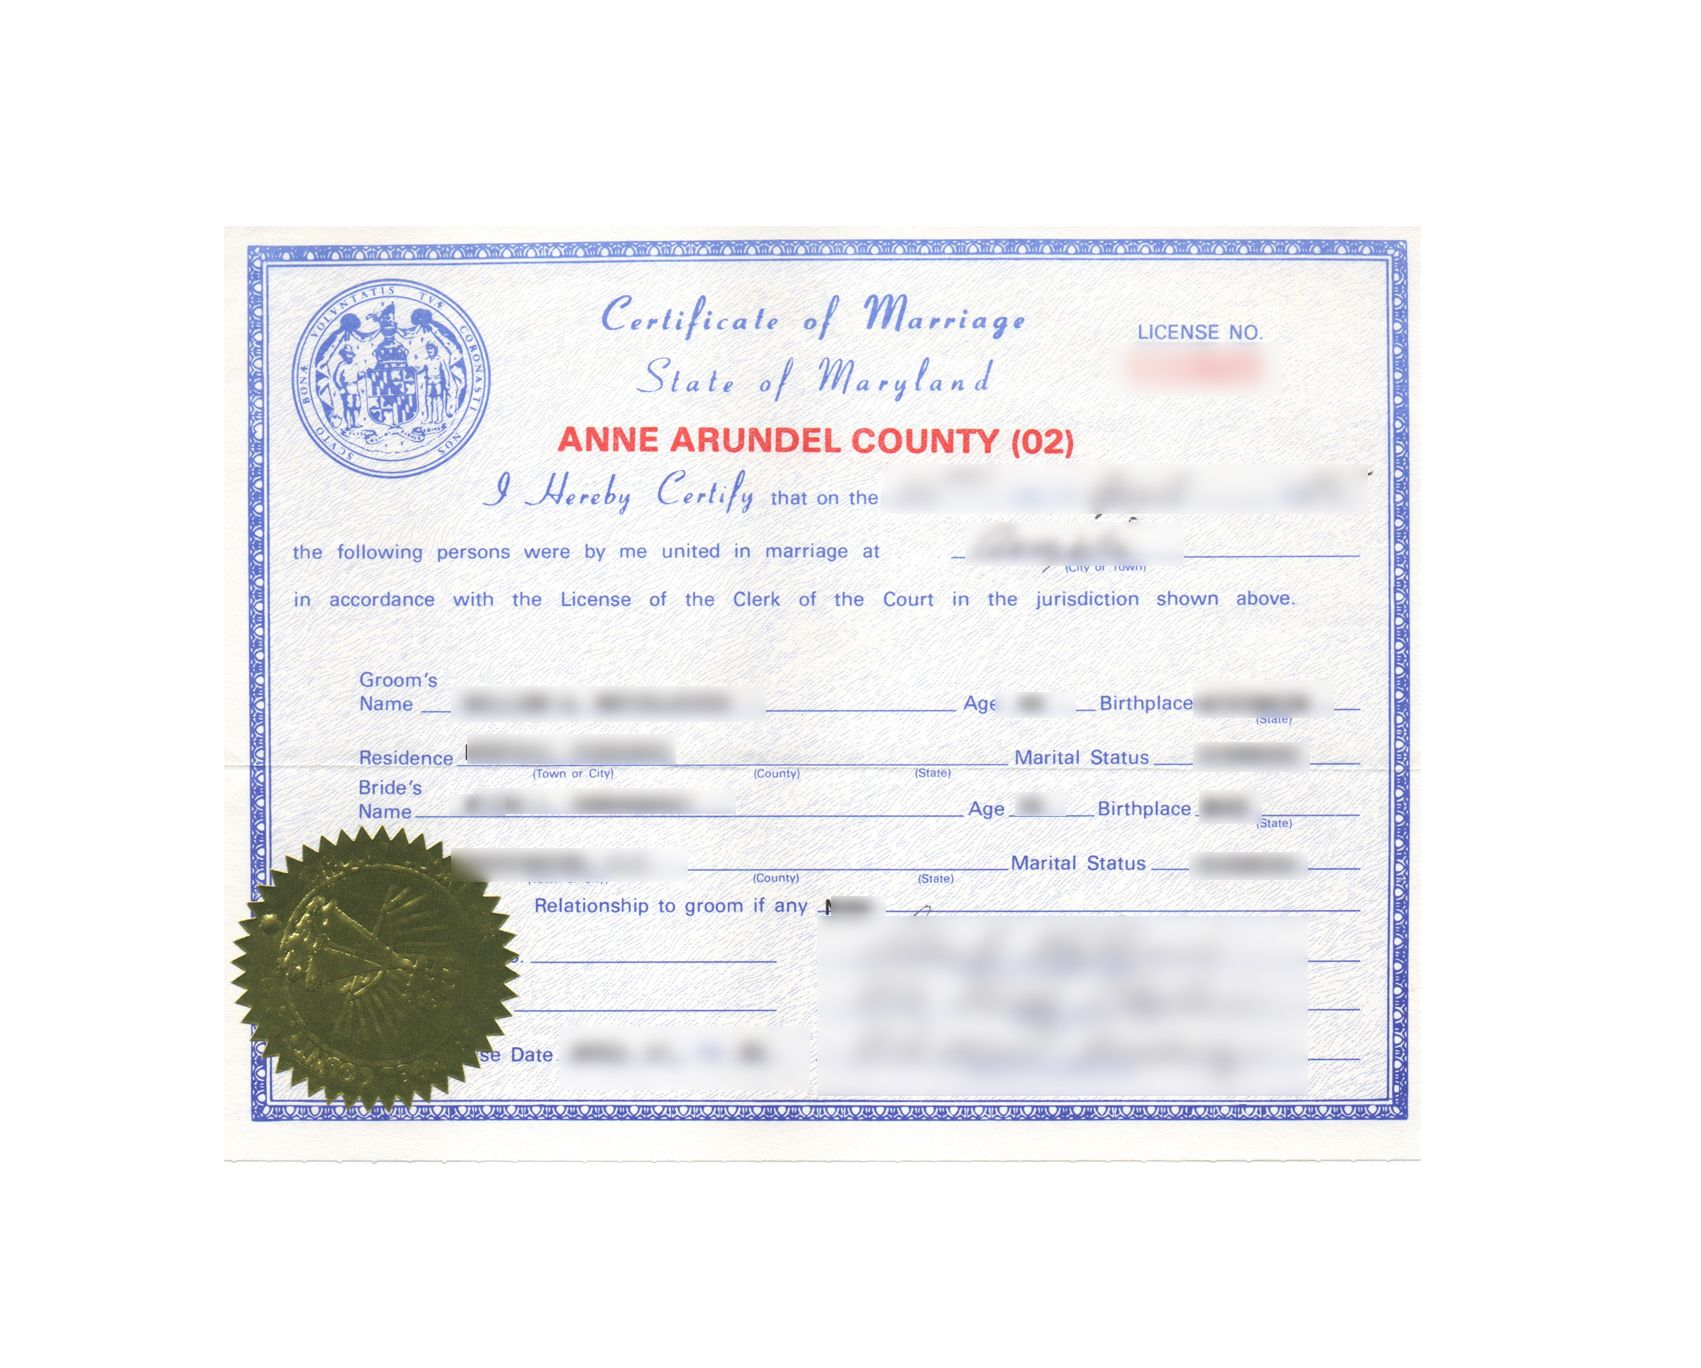 Anne Arundel County State Of Maryland Certificate Of Marriage Non